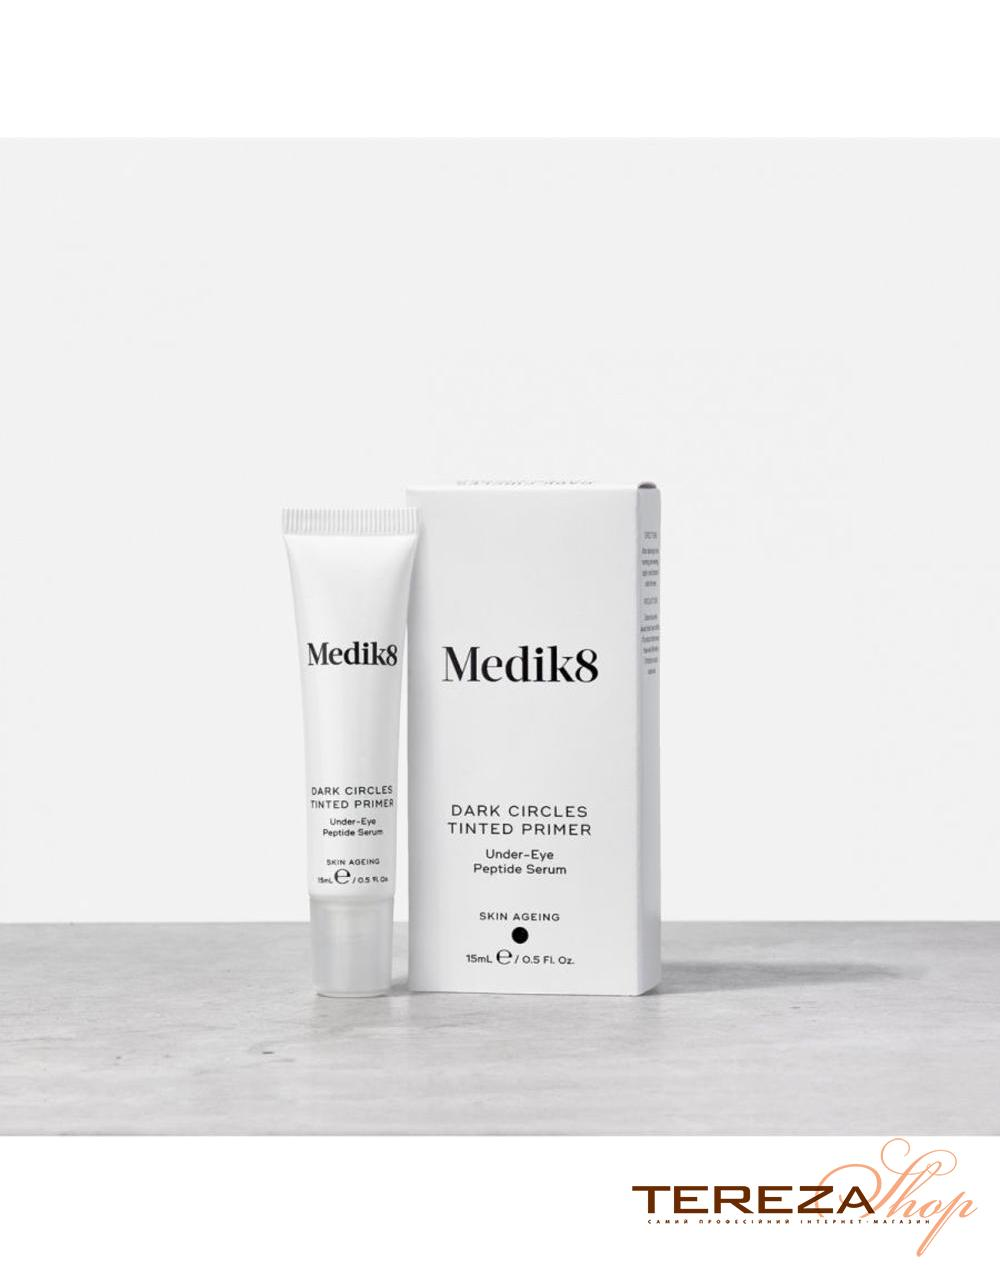 DARK CIRCLES MEDIK8 | Tereza Shop